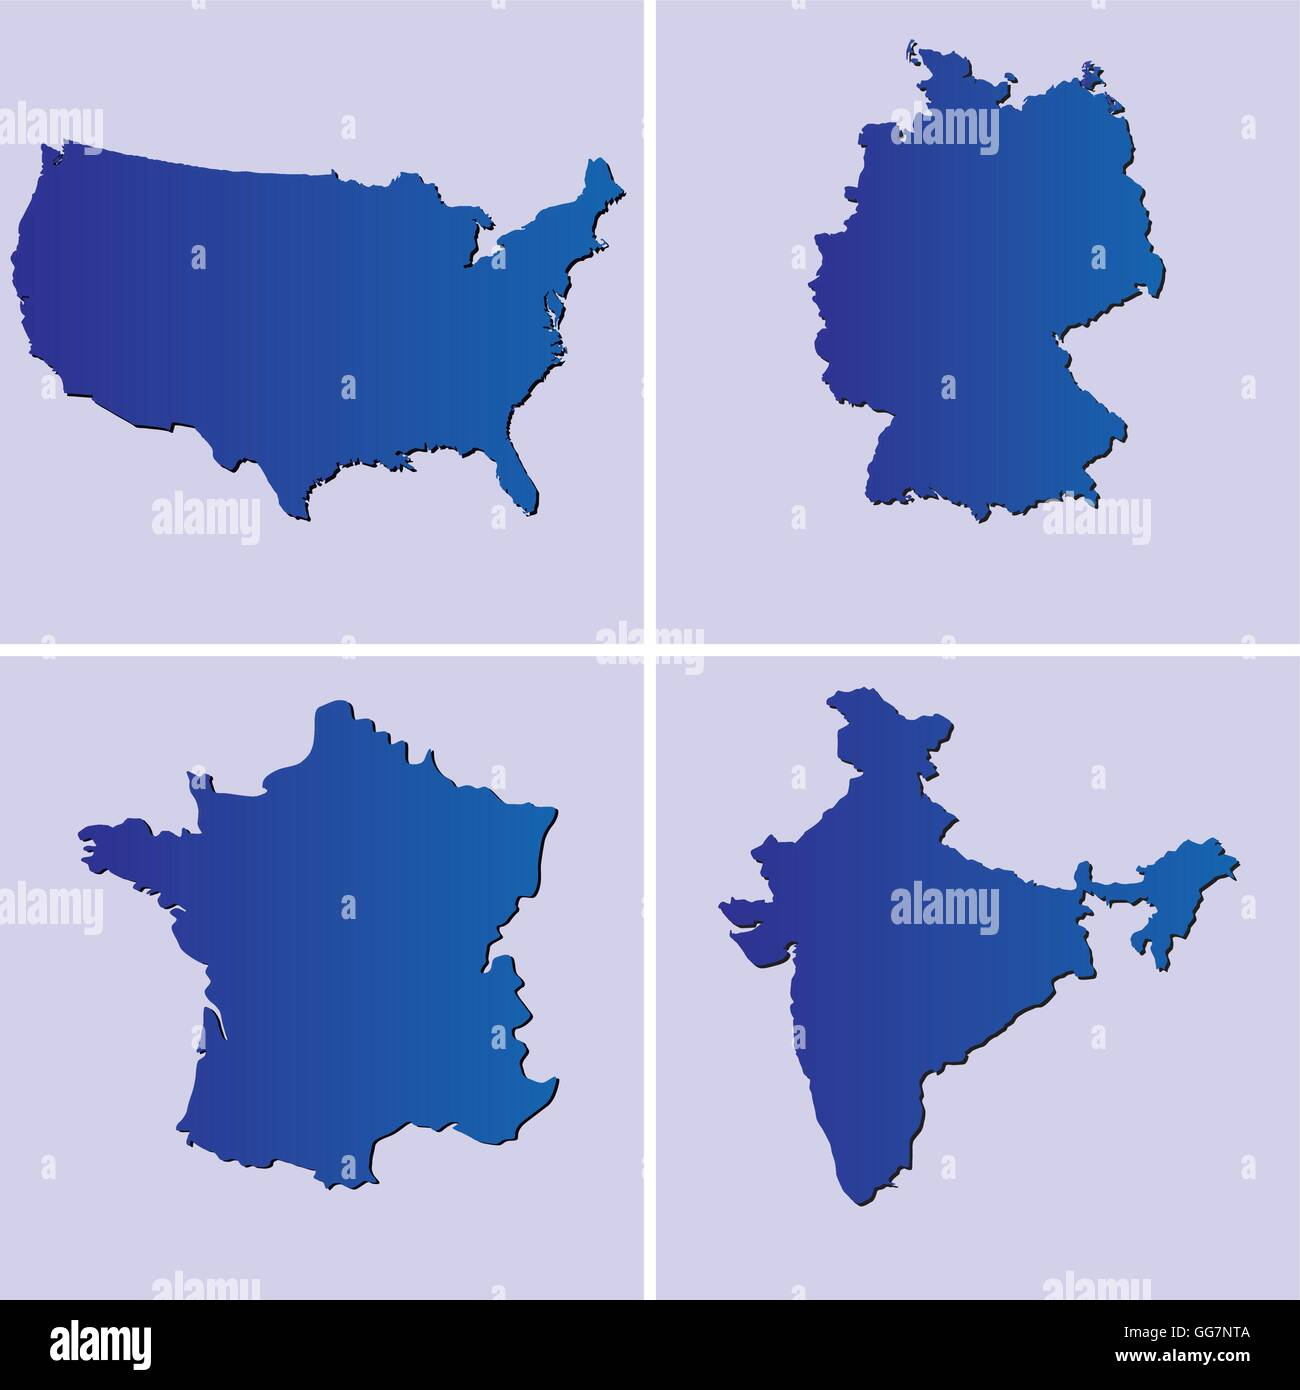 Blue maps of usa france germany and india on light blue blue maps of usa france germany and india on light blue backgrounds gumiabroncs Choice Image